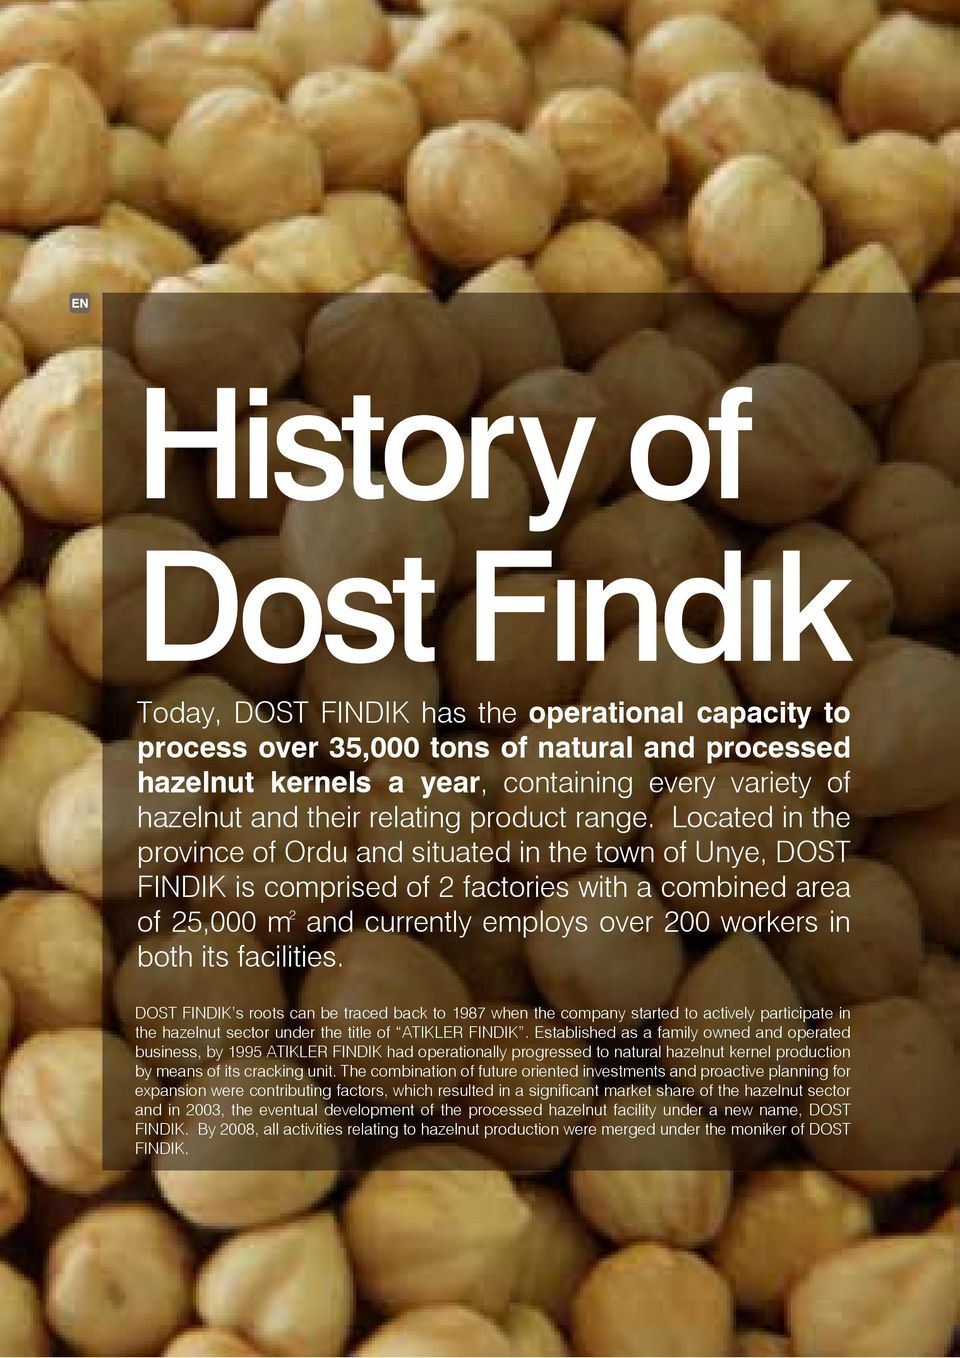 Located in the province of Ordu and situated in the town of Unye, DOST FINDIK is comprised of 2 factories with a combined area 2 of 25,000 m and currently employs over 200 workers in both its